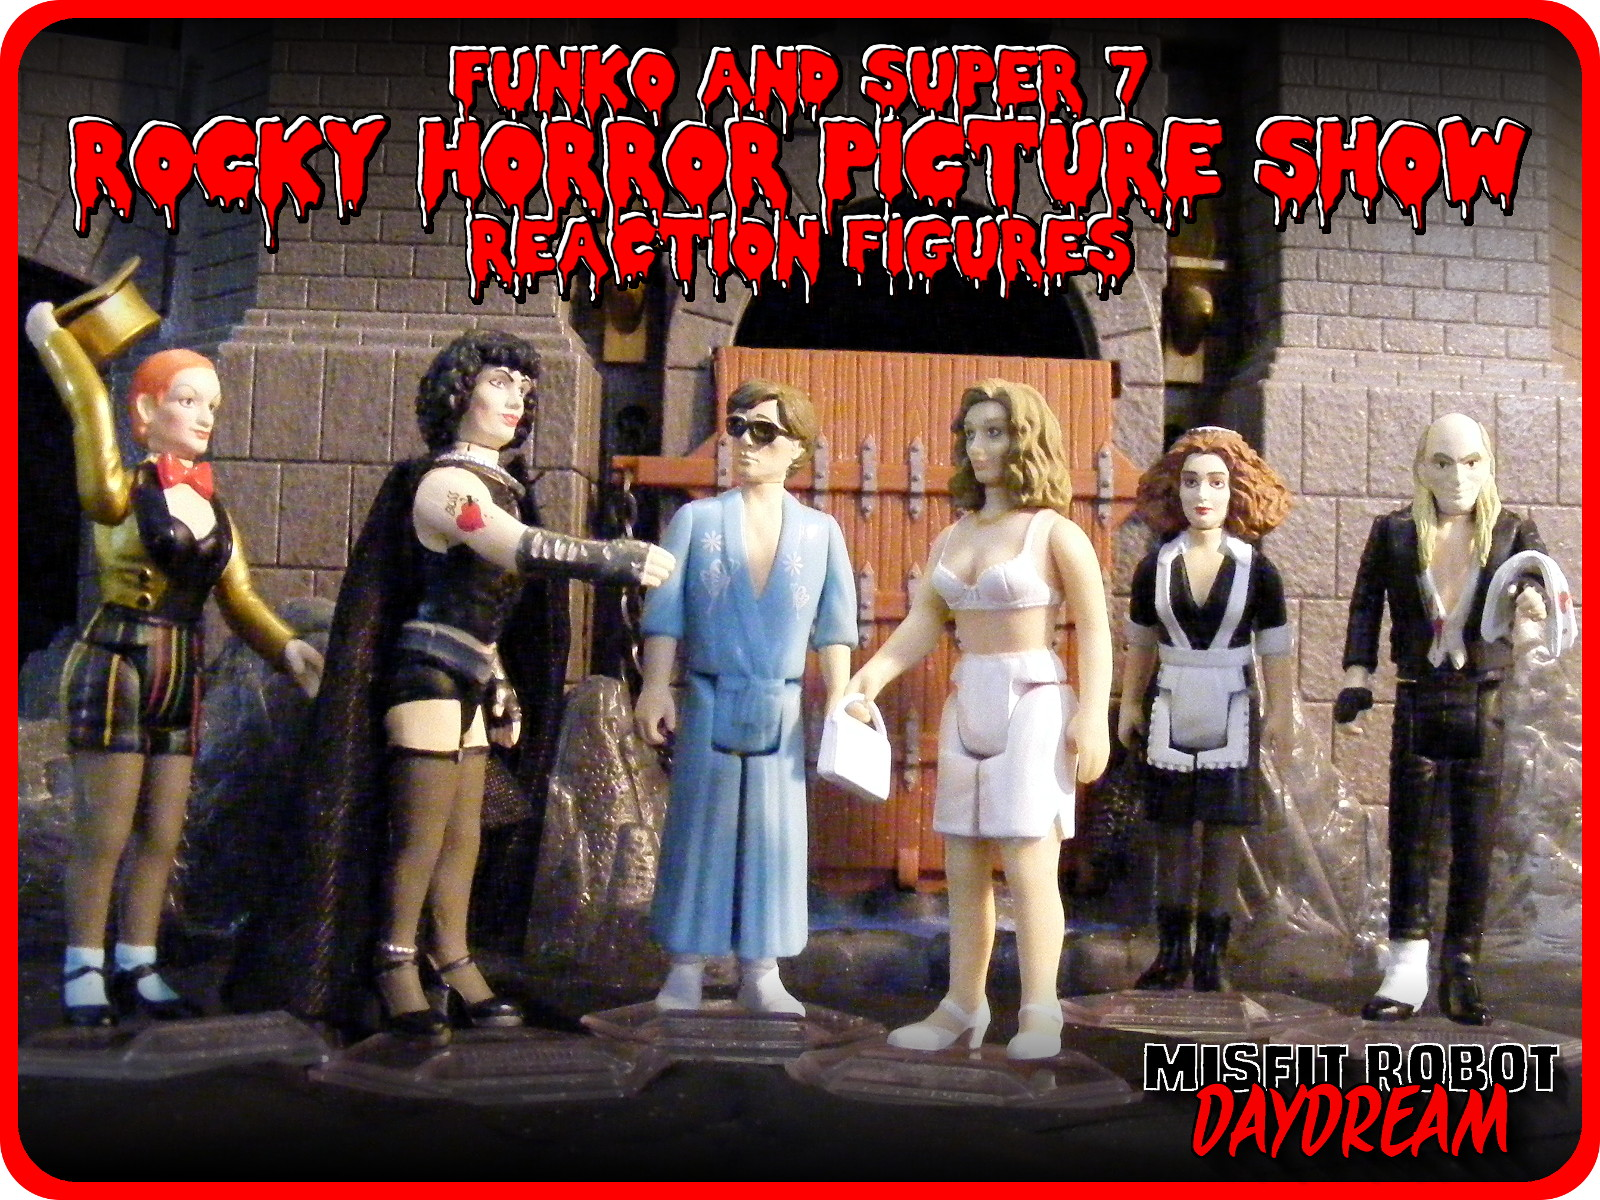 Misfit Robot Daydream Rocky Horror Picture Show Reaction Retro